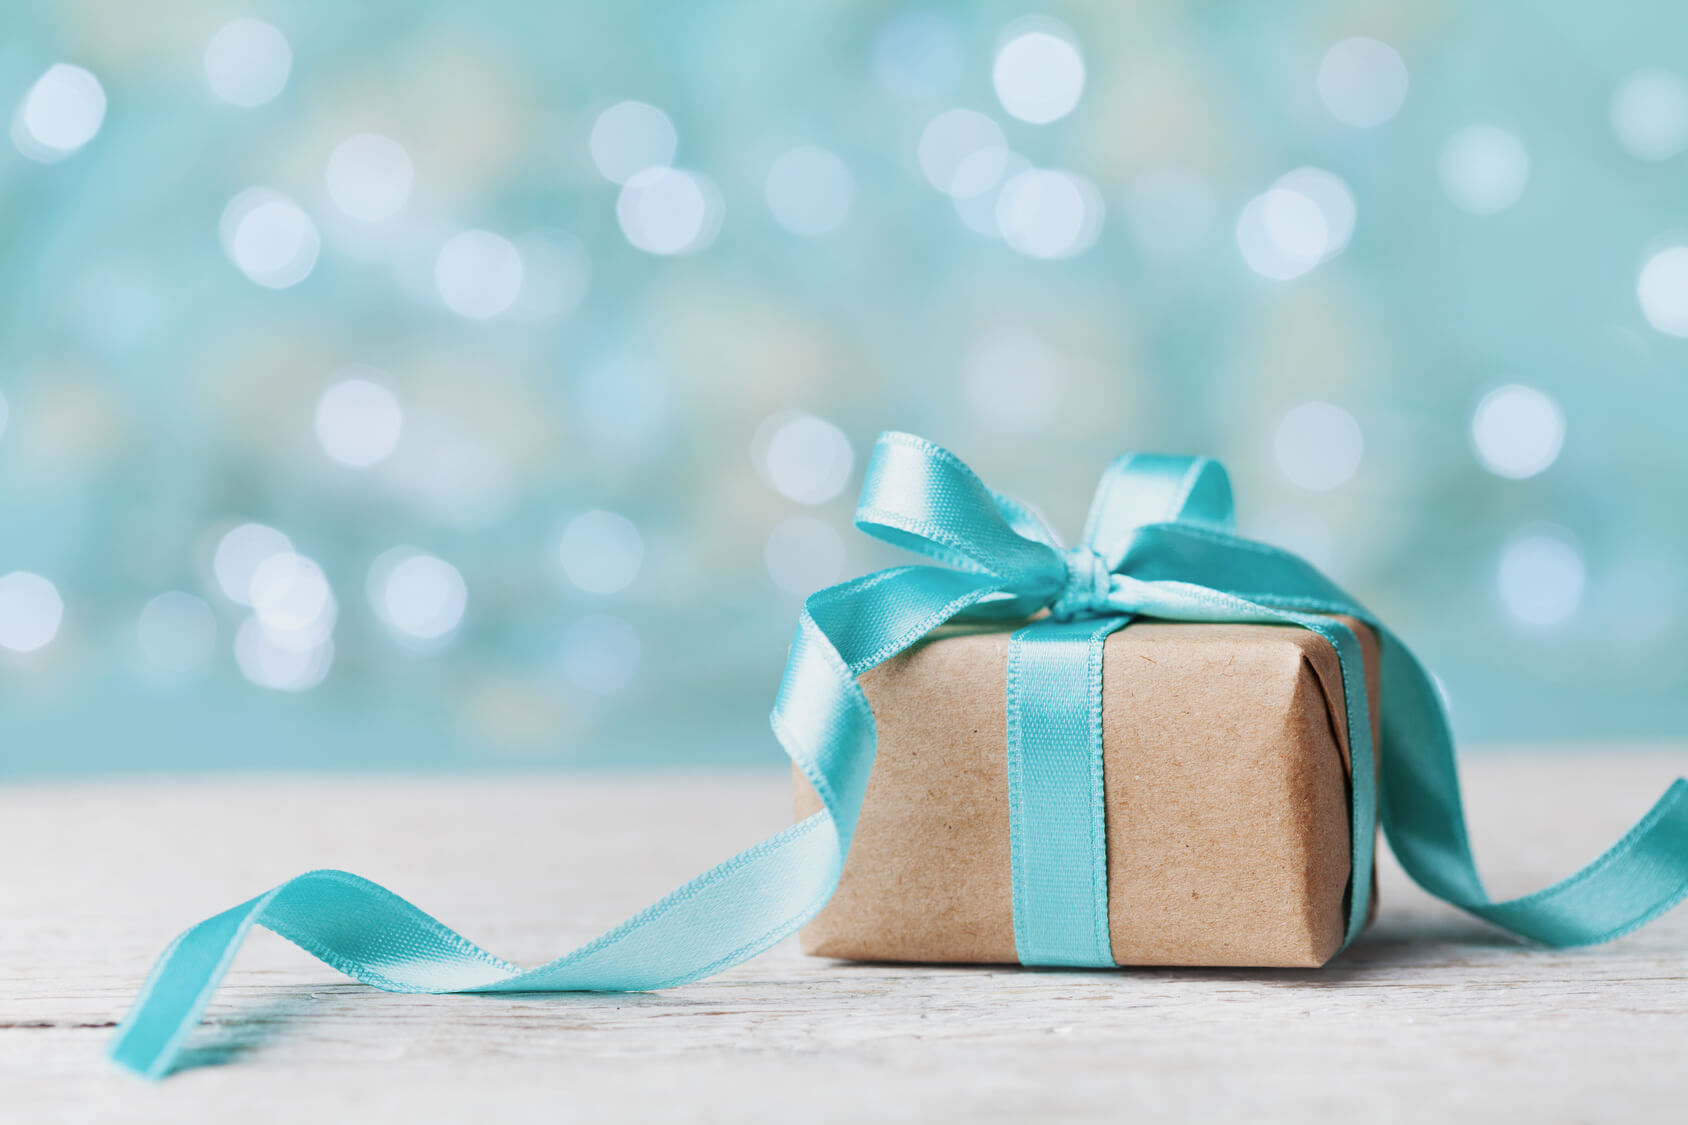 How to choose the best rewards for your brand loyalty program